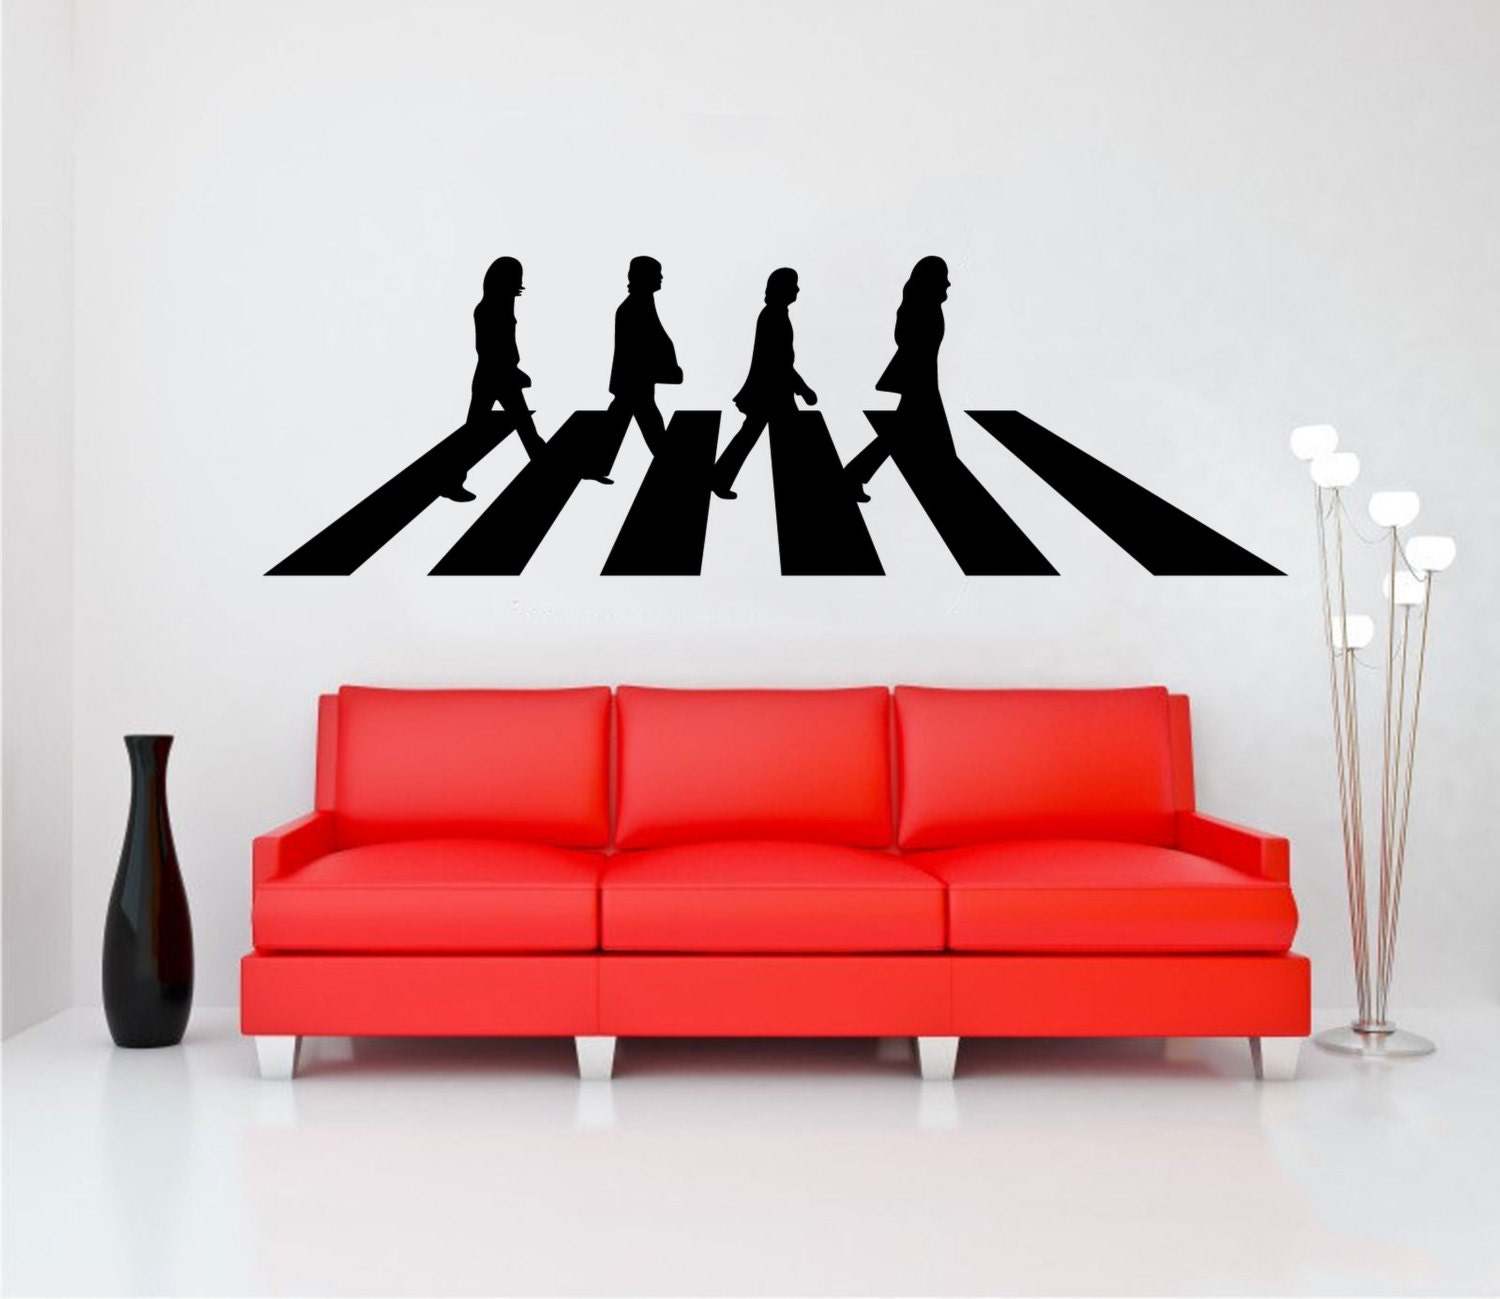 The beatles abbey road wall decal vinyl sticker wall art mural for Abbey road wall mural